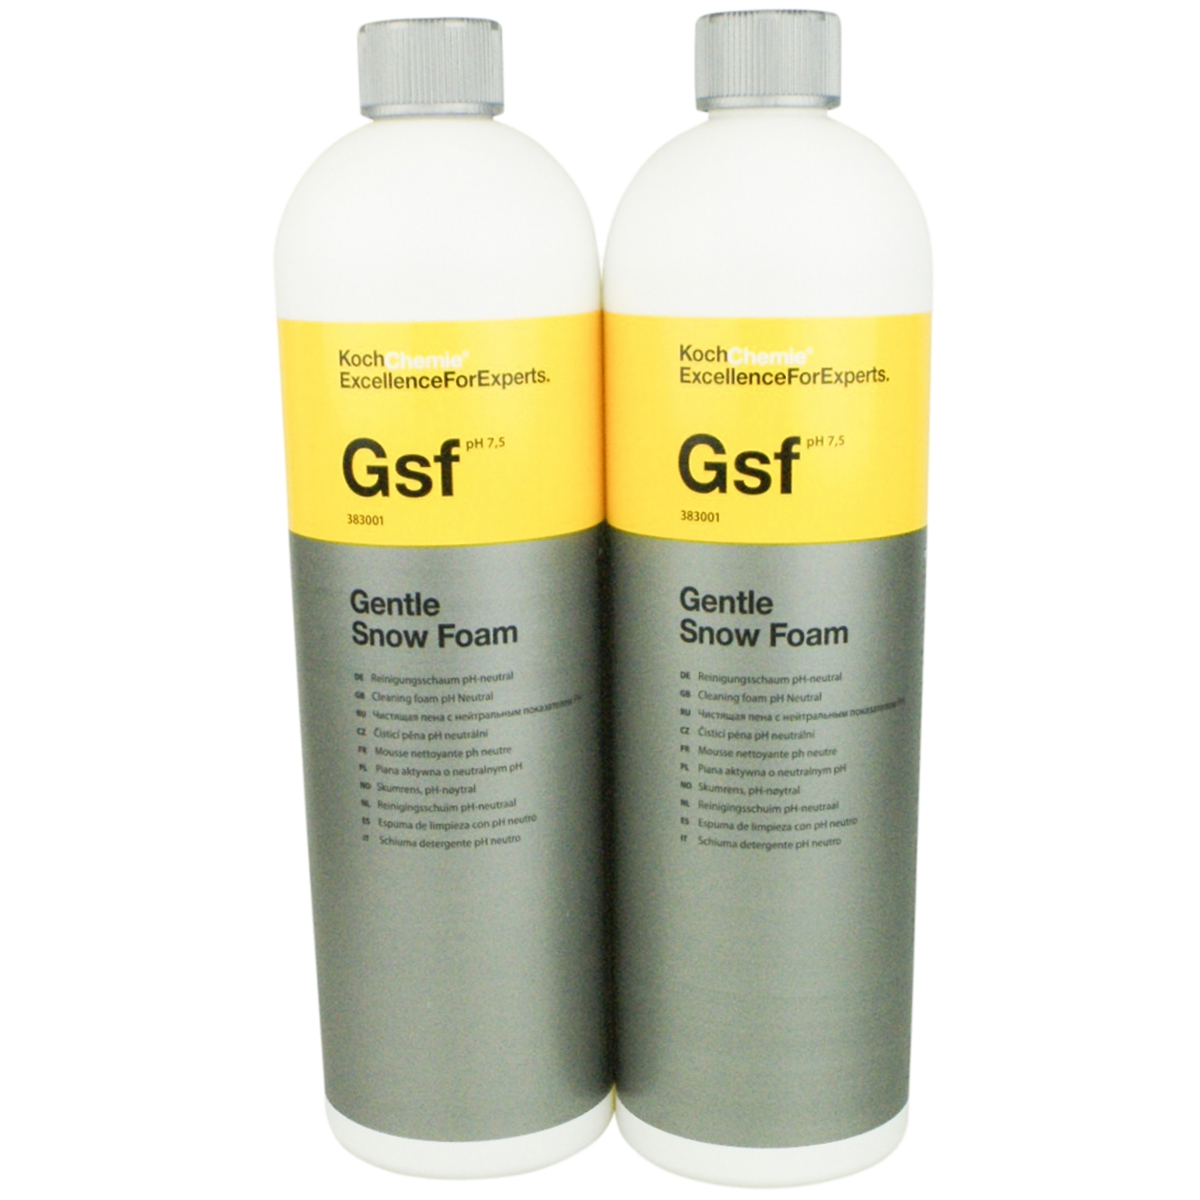 koch chemie gsf gentle snow foam ph neutral 2x1 liter 900185. Black Bedroom Furniture Sets. Home Design Ideas